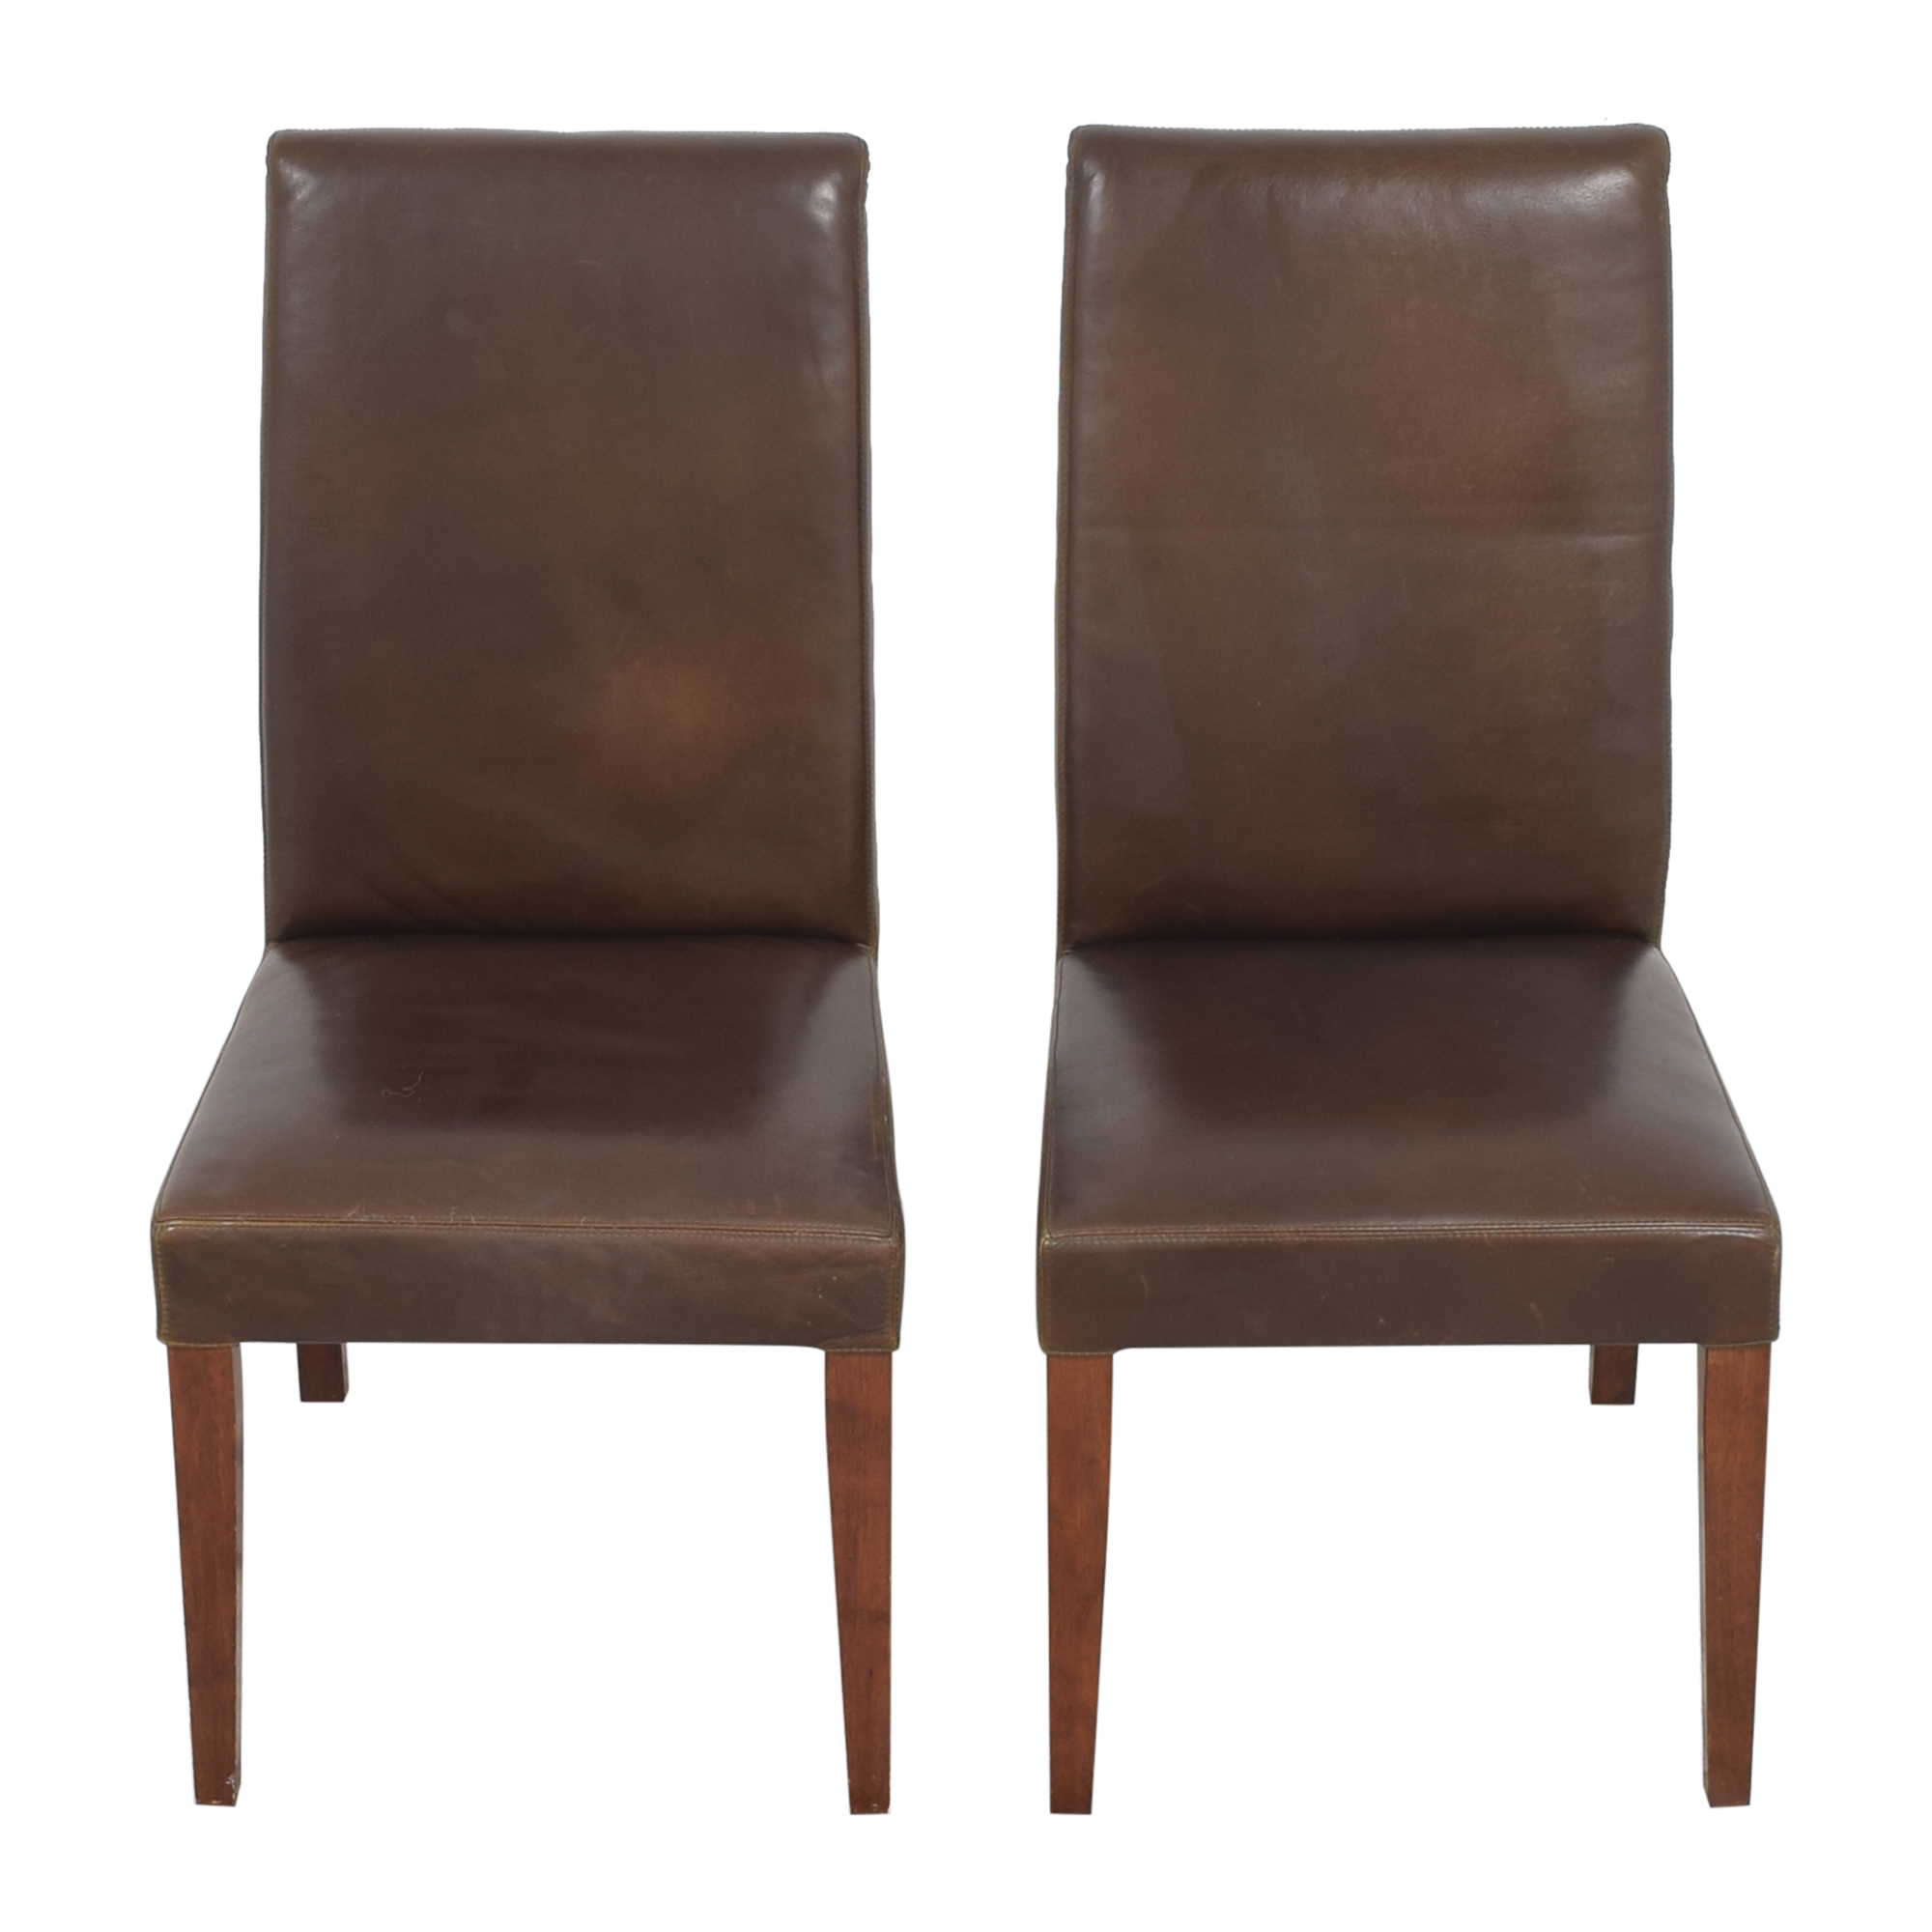 Pottery Barn Pottery Barn Grayson Dining Side Chairs on sale